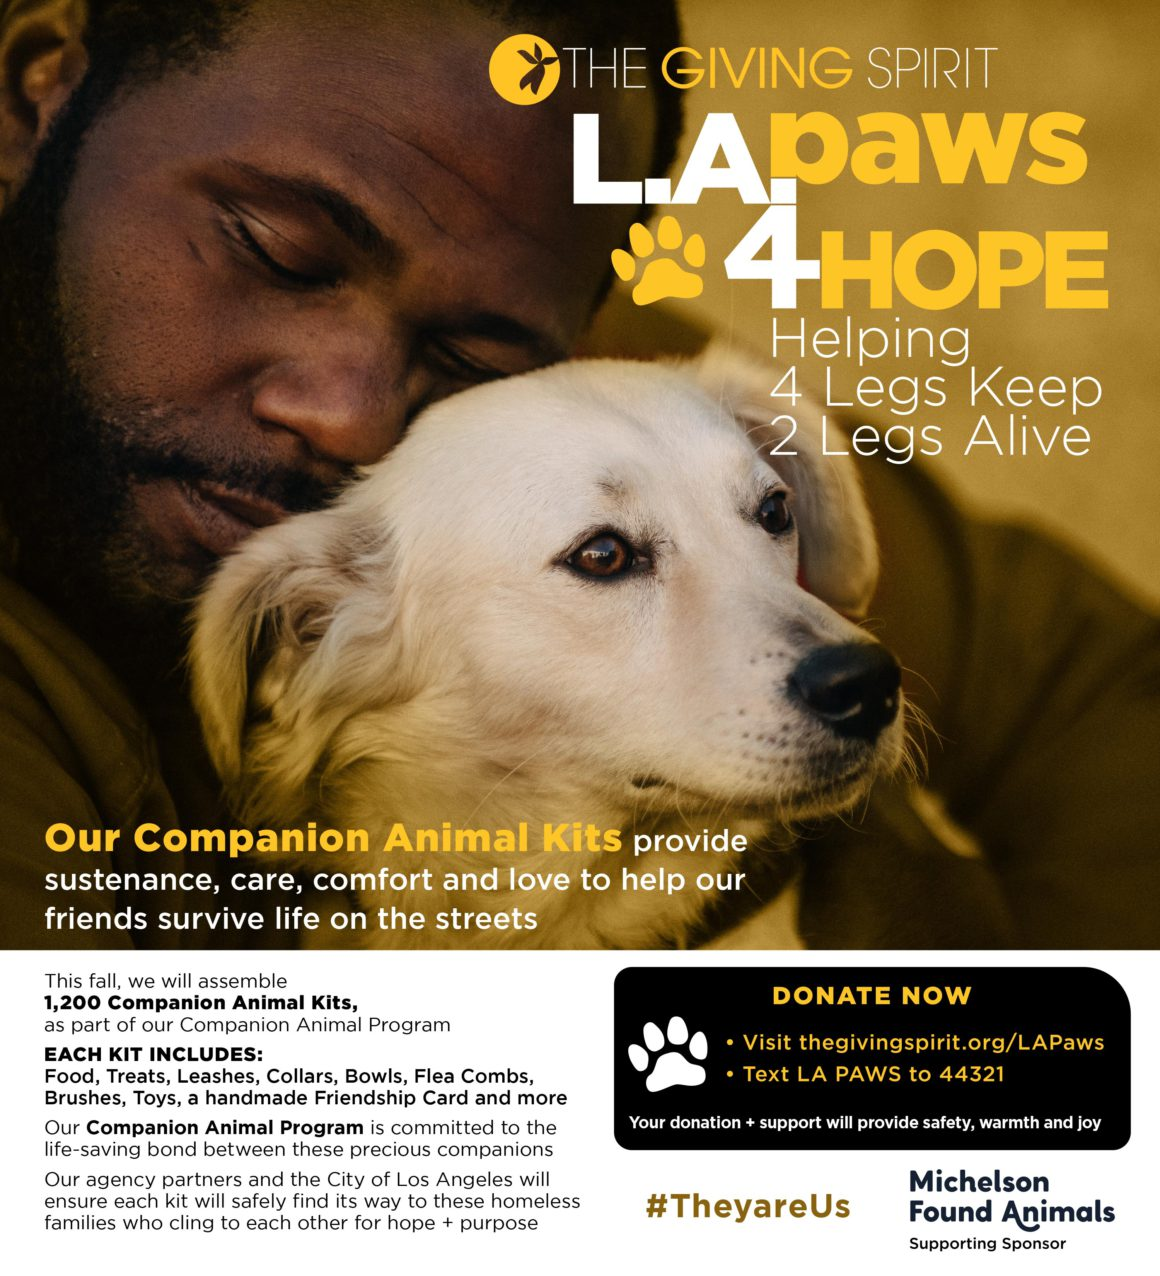 flyer for LA Paws 4 hope